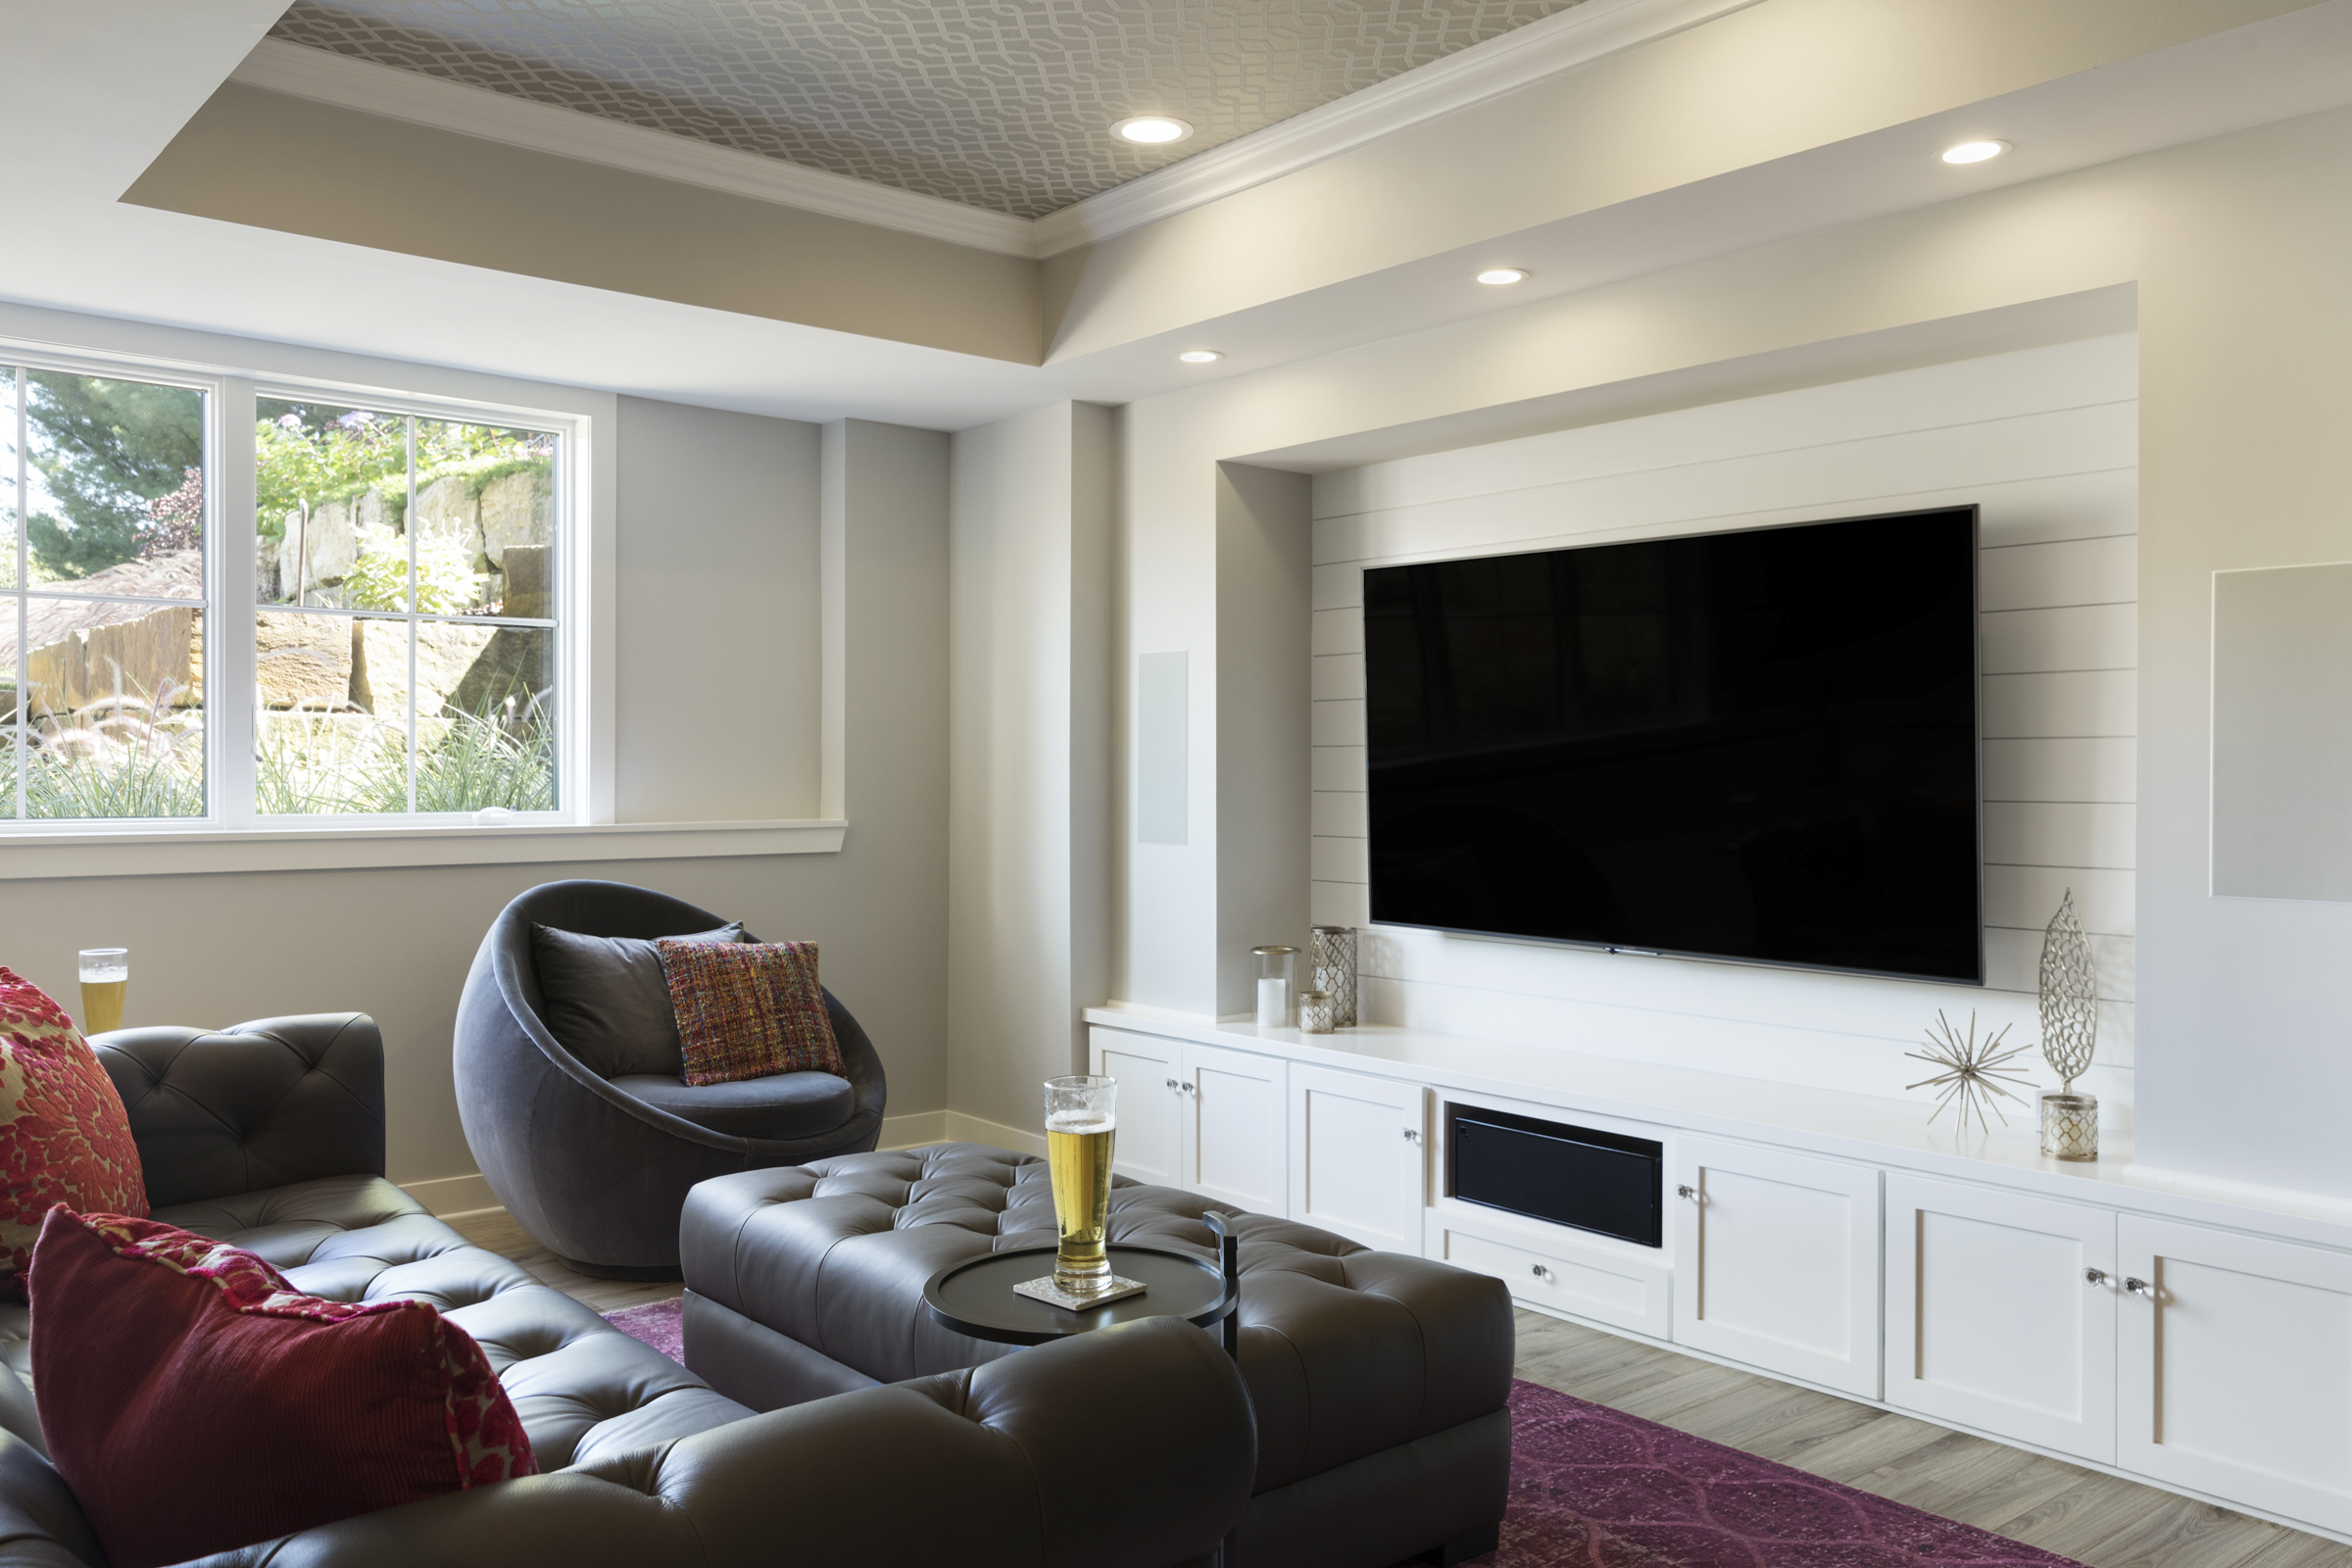 Moms Design Build - Basement Remodel Theatre Room